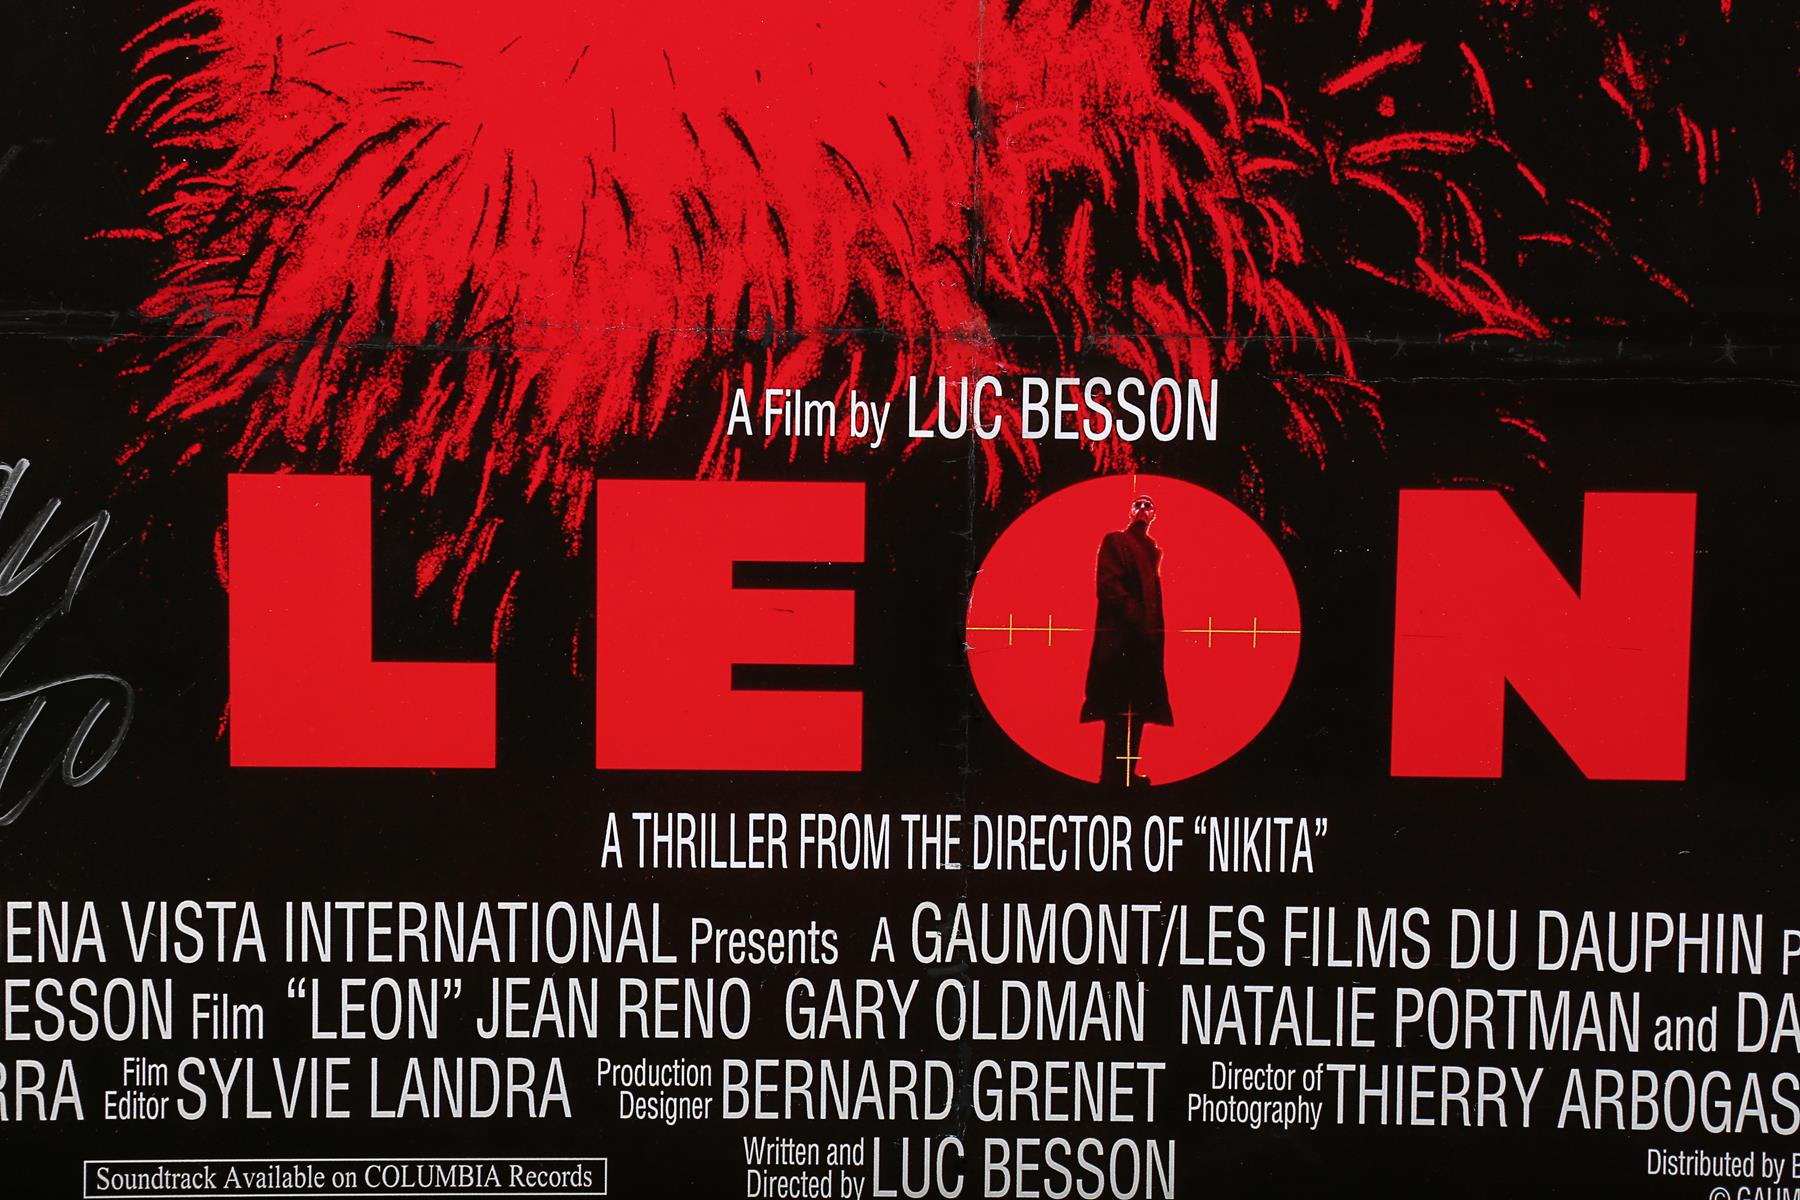 LEON (1994) - UK One-Sheet, 1994, Autographed by Jean Reno - Image 5 of 5